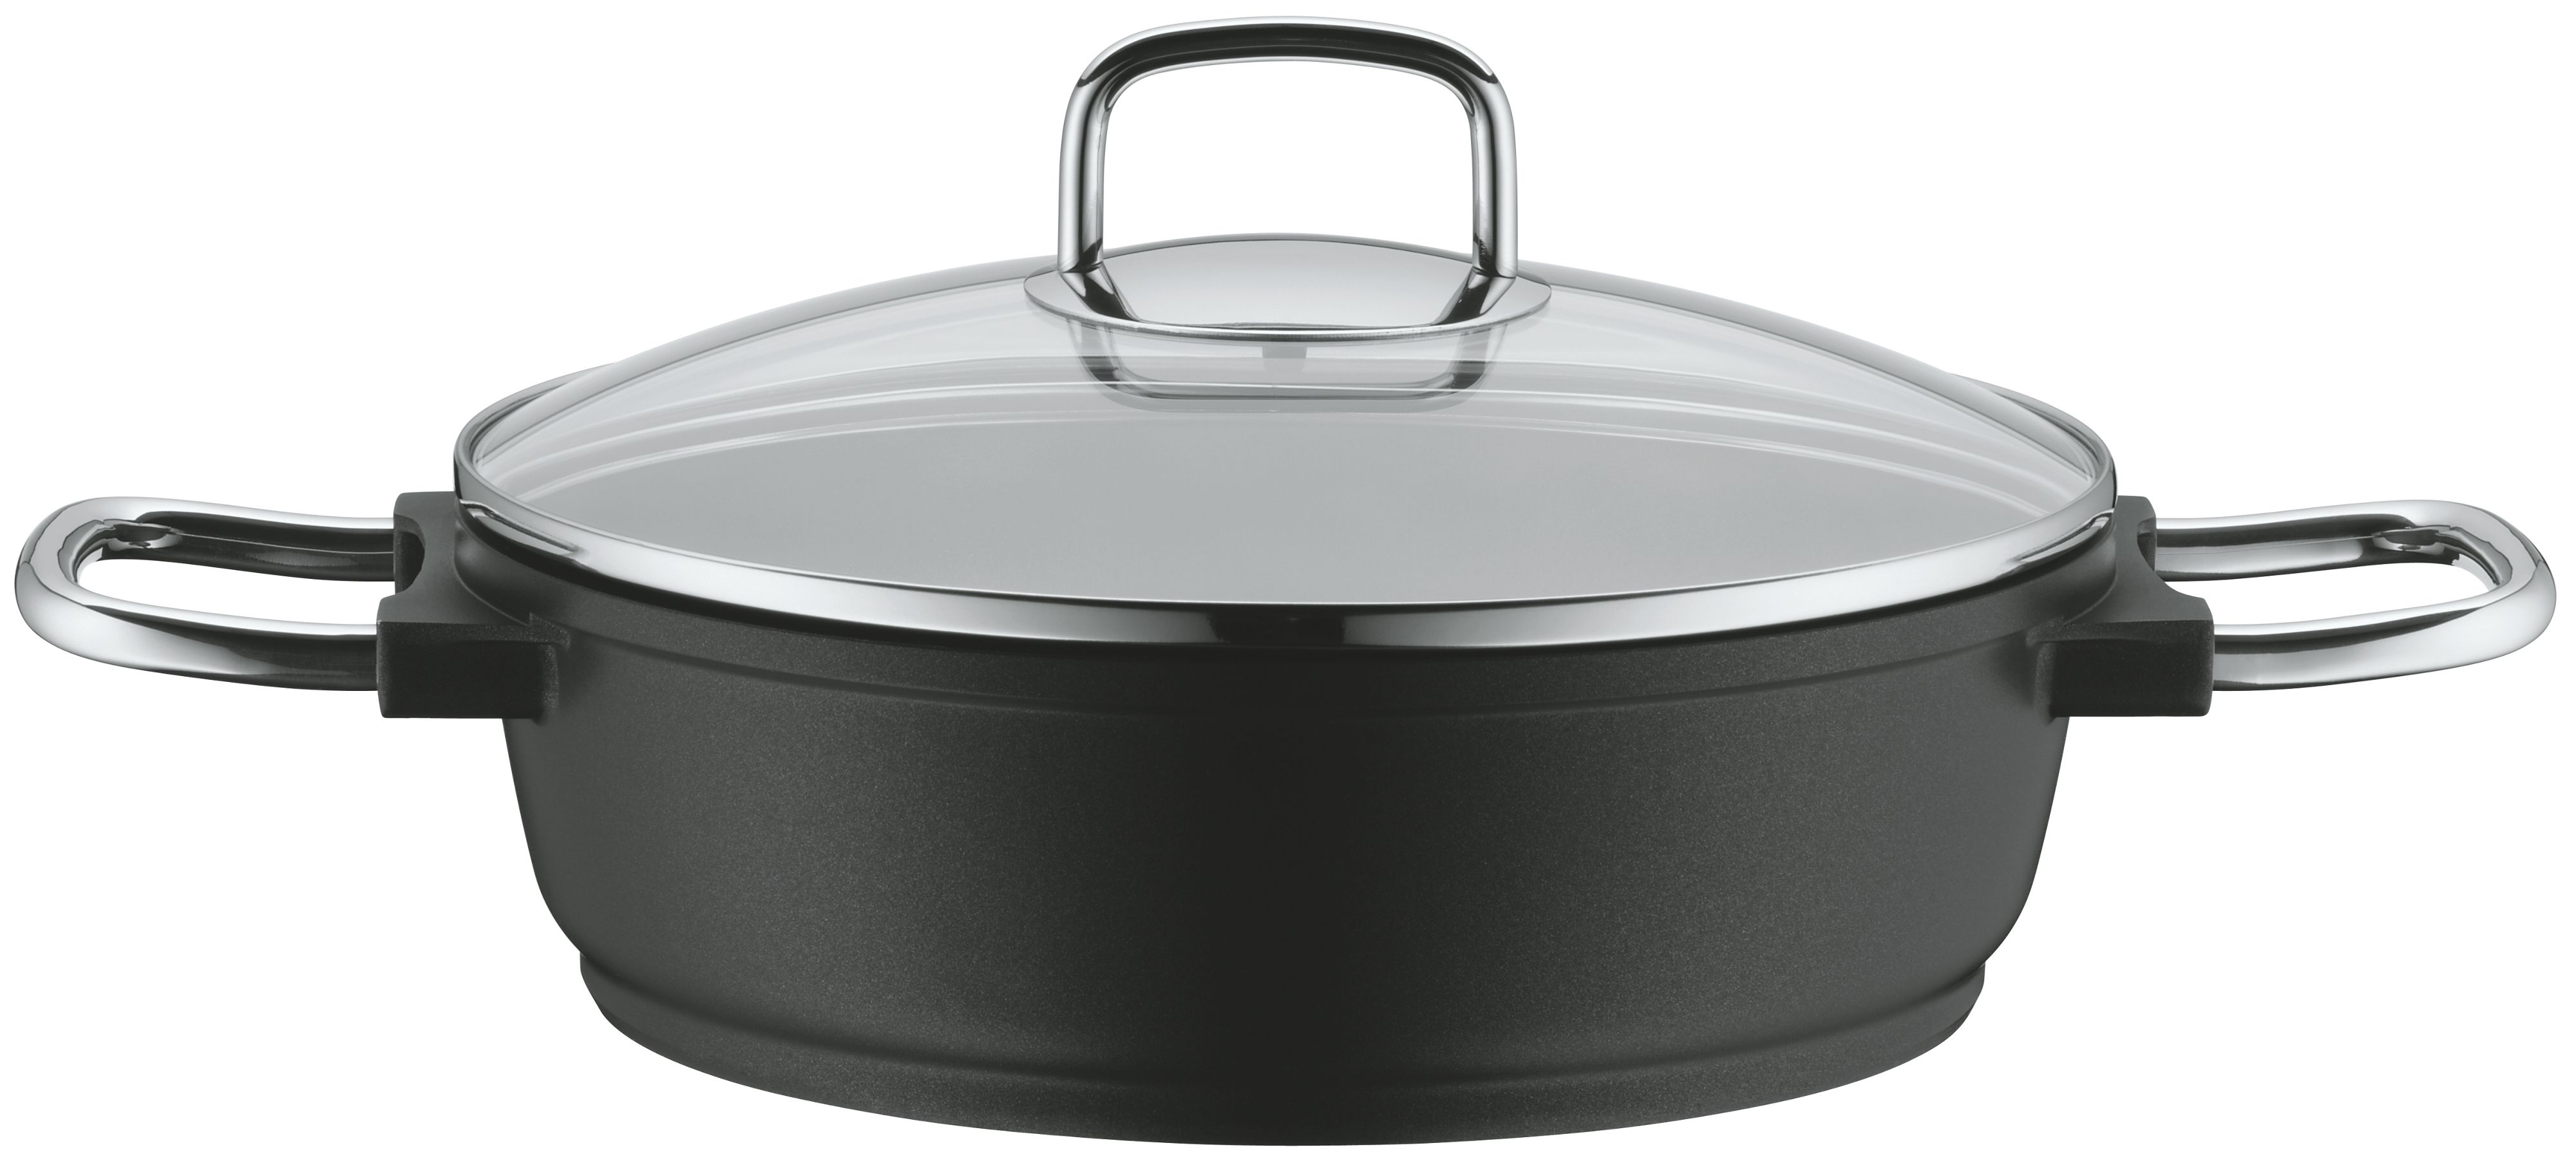 WMF WMF Bueno induction low casserole with glass lid